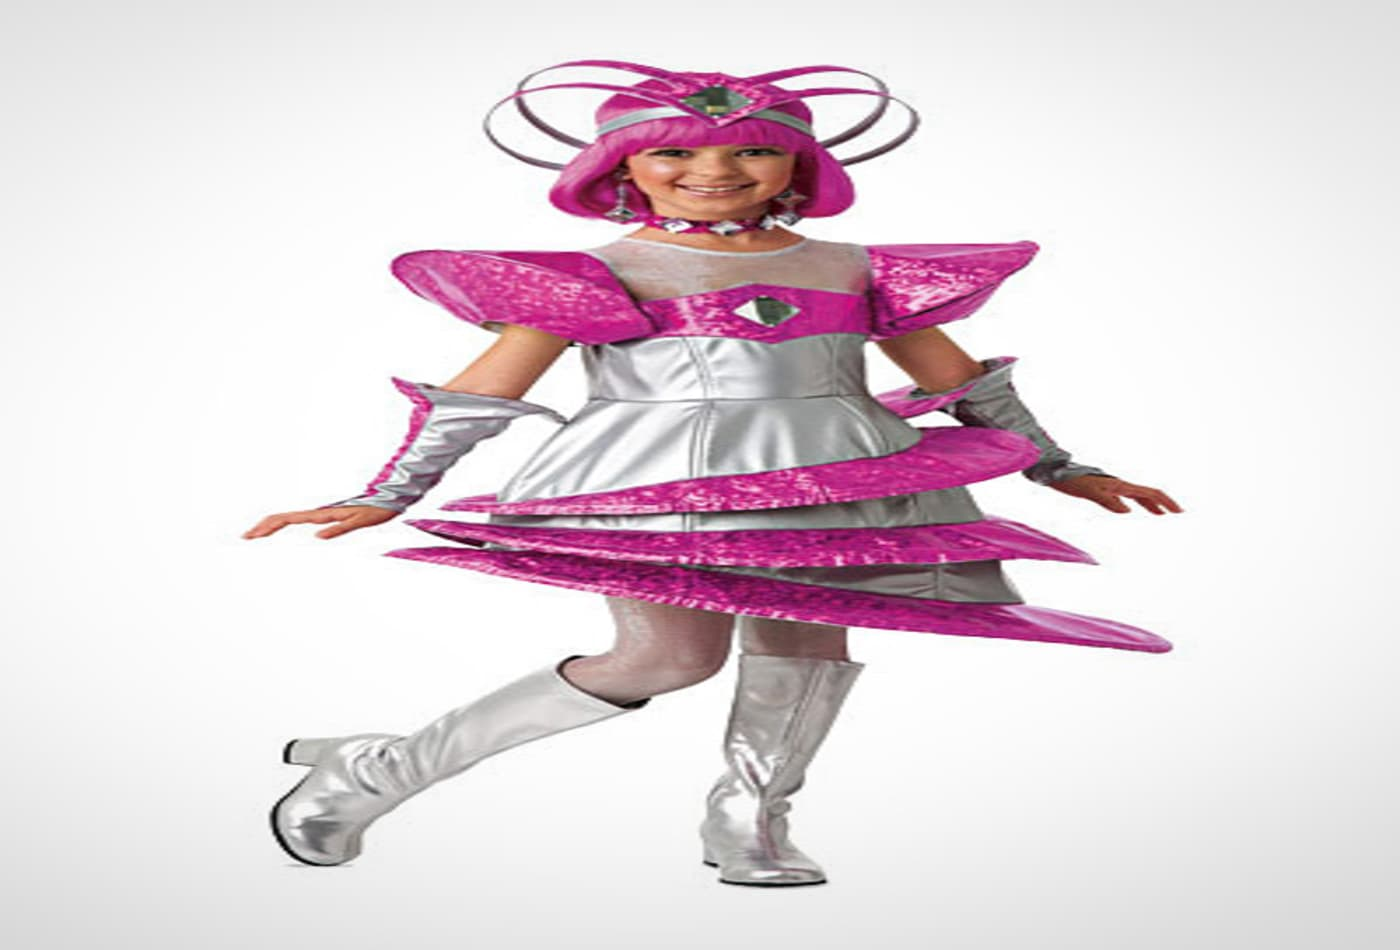 Halloween-costumes-kids-2012-galaxy-princess.jpg